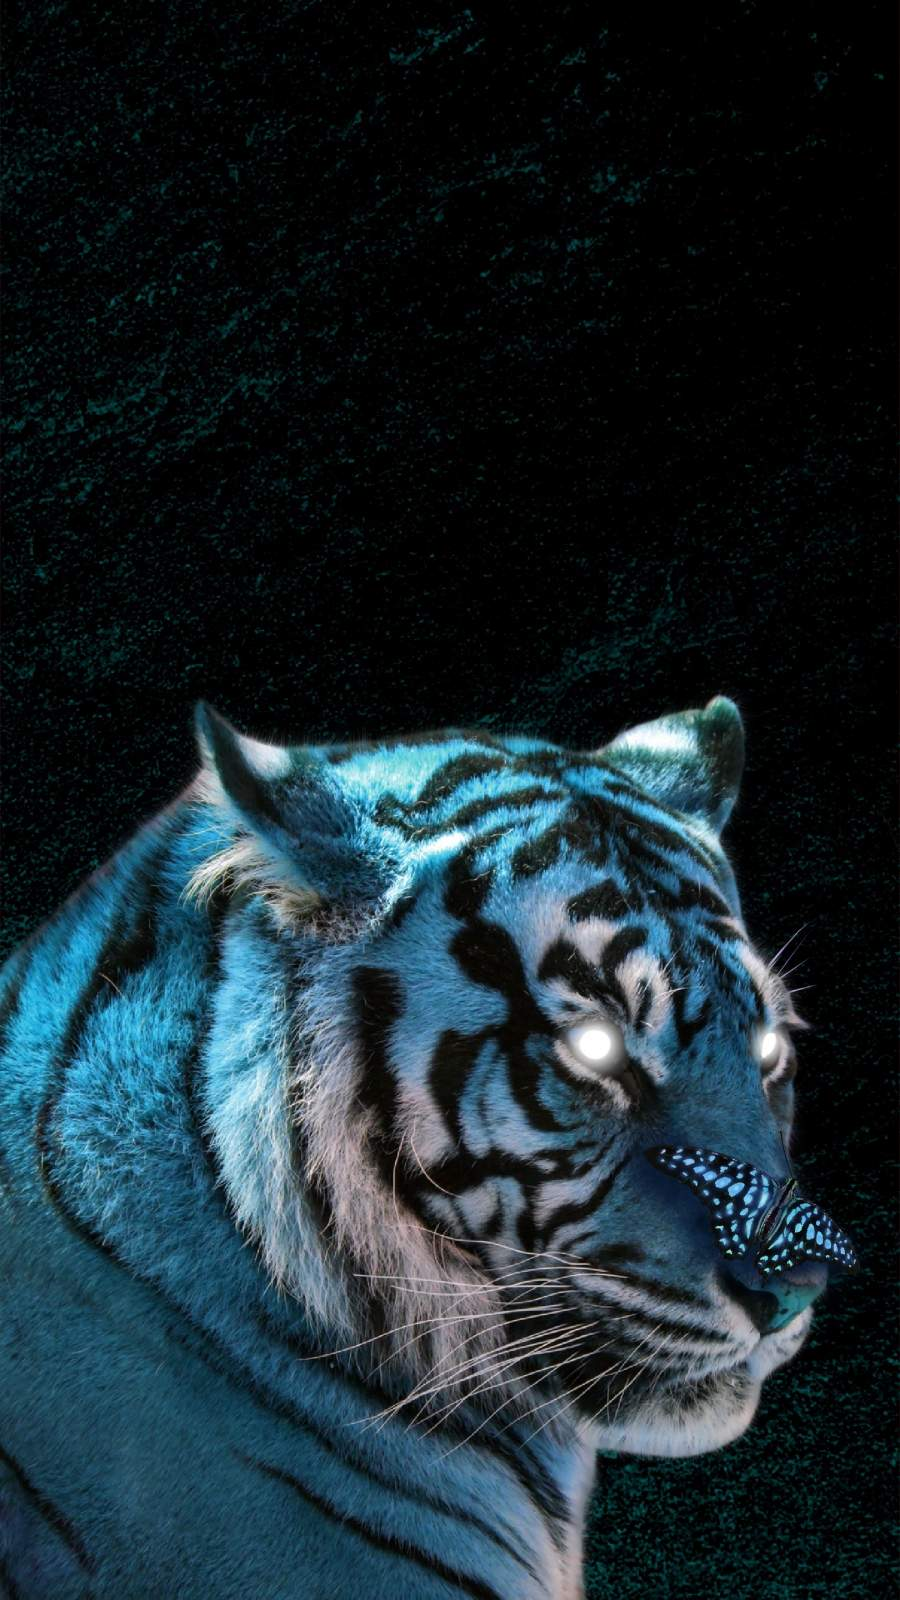 The Tiger iPhone Wallpaper